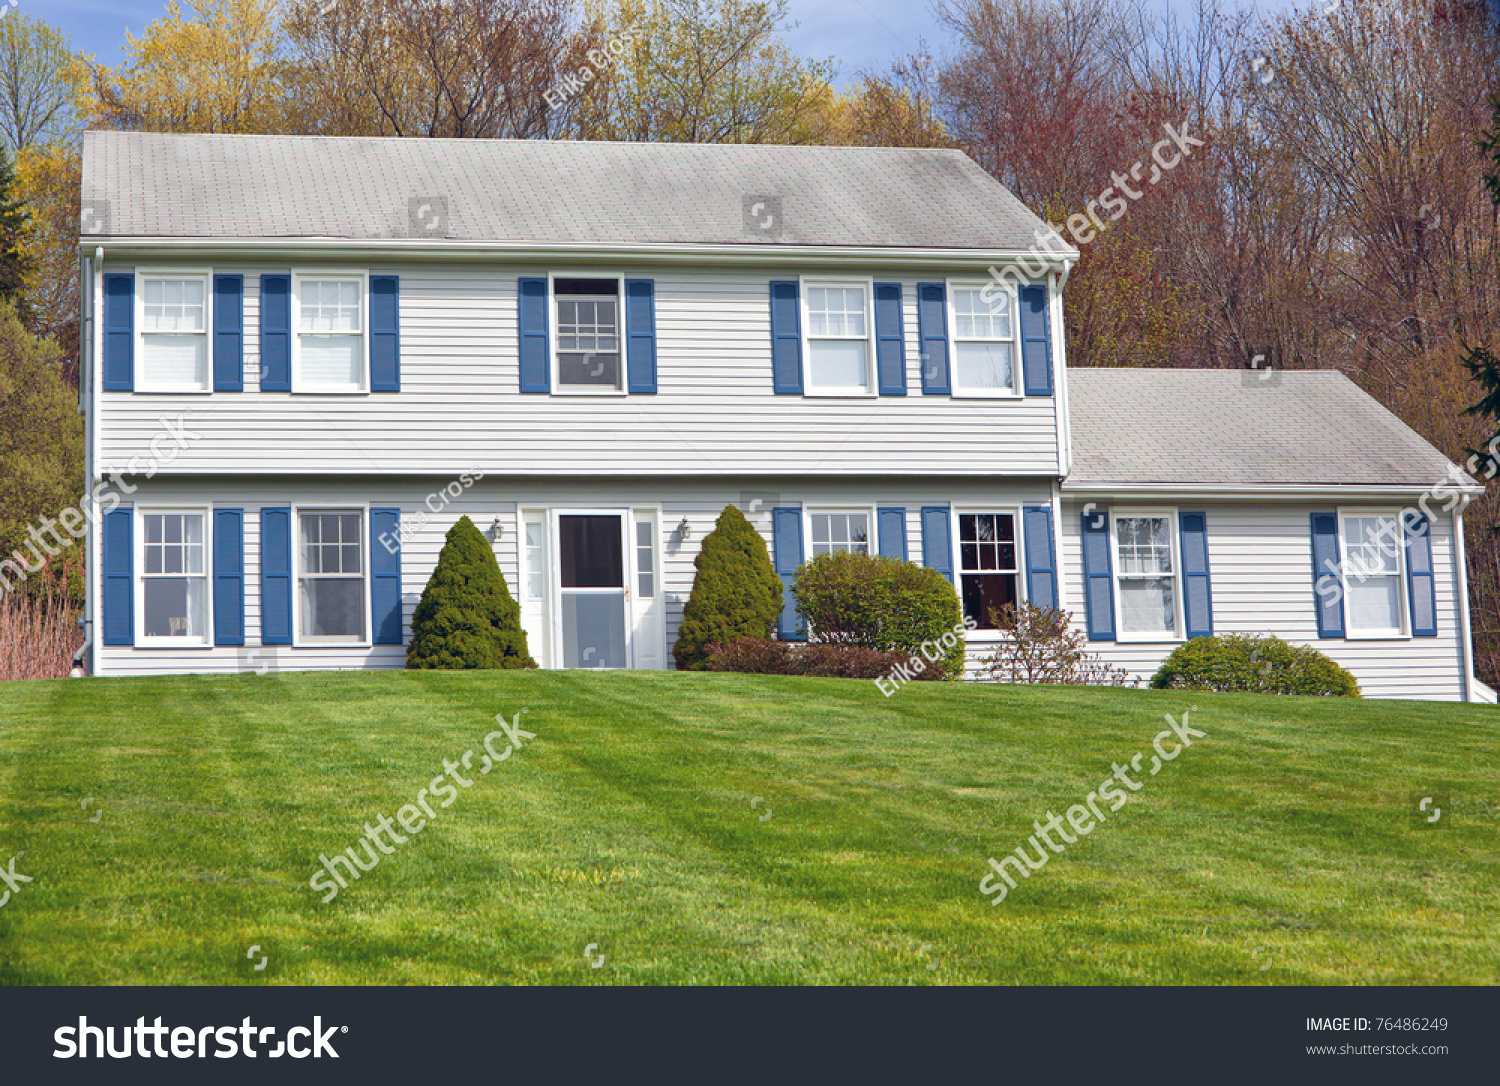 Traditional American Detached Colonial Style House Stock Photo